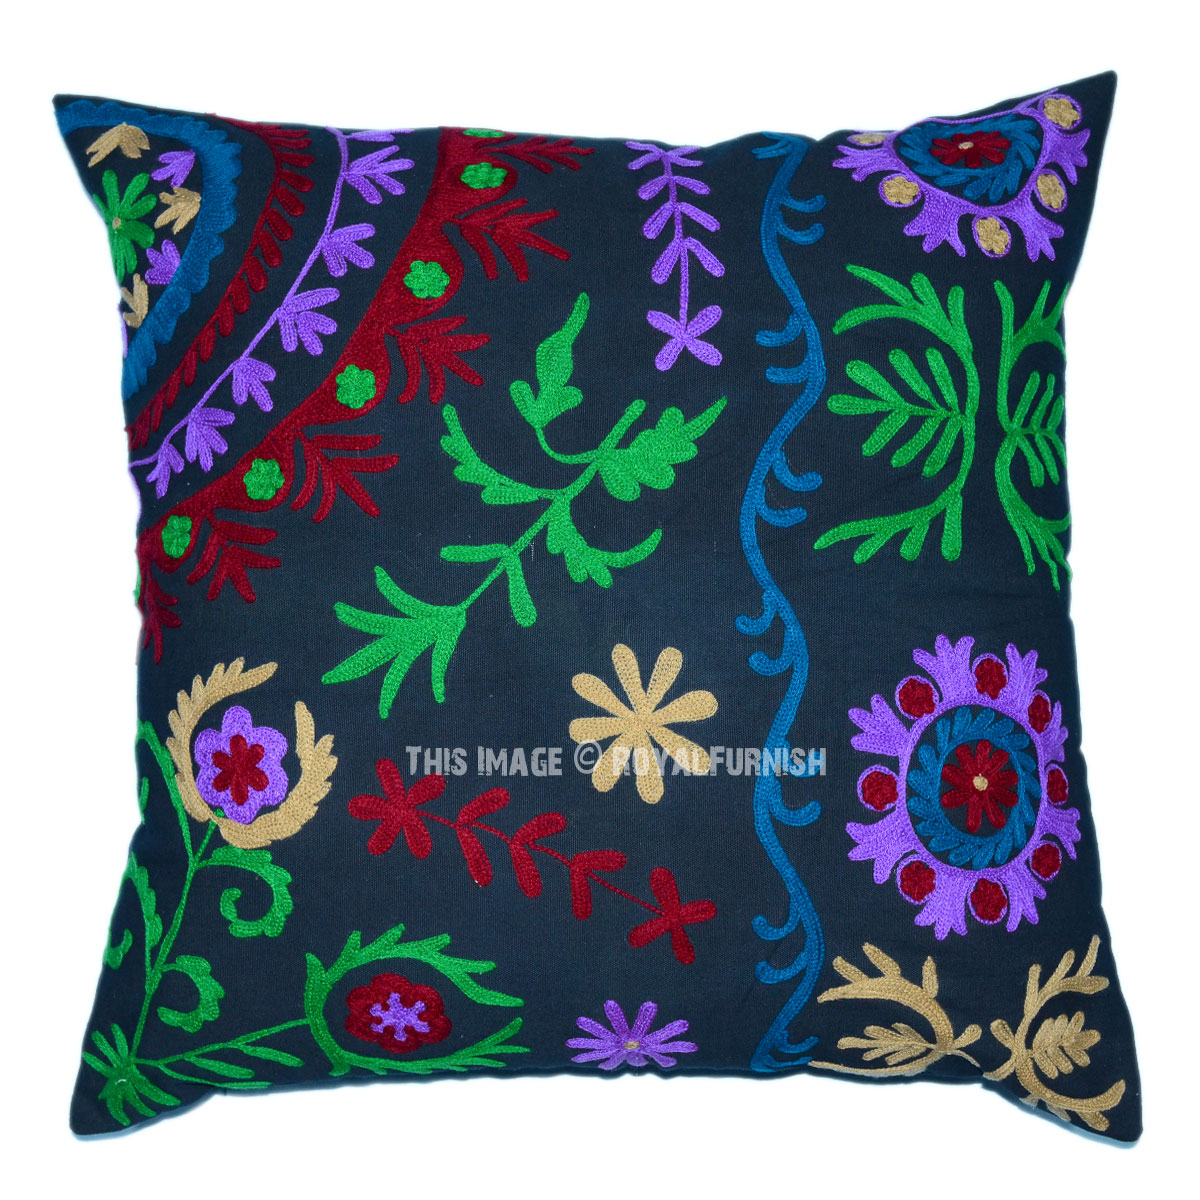 Embroidered Throw Pillow Covers : Black 24x24 Suzani Embroidered Throw Pillow Cover - RoyalFurnish.com